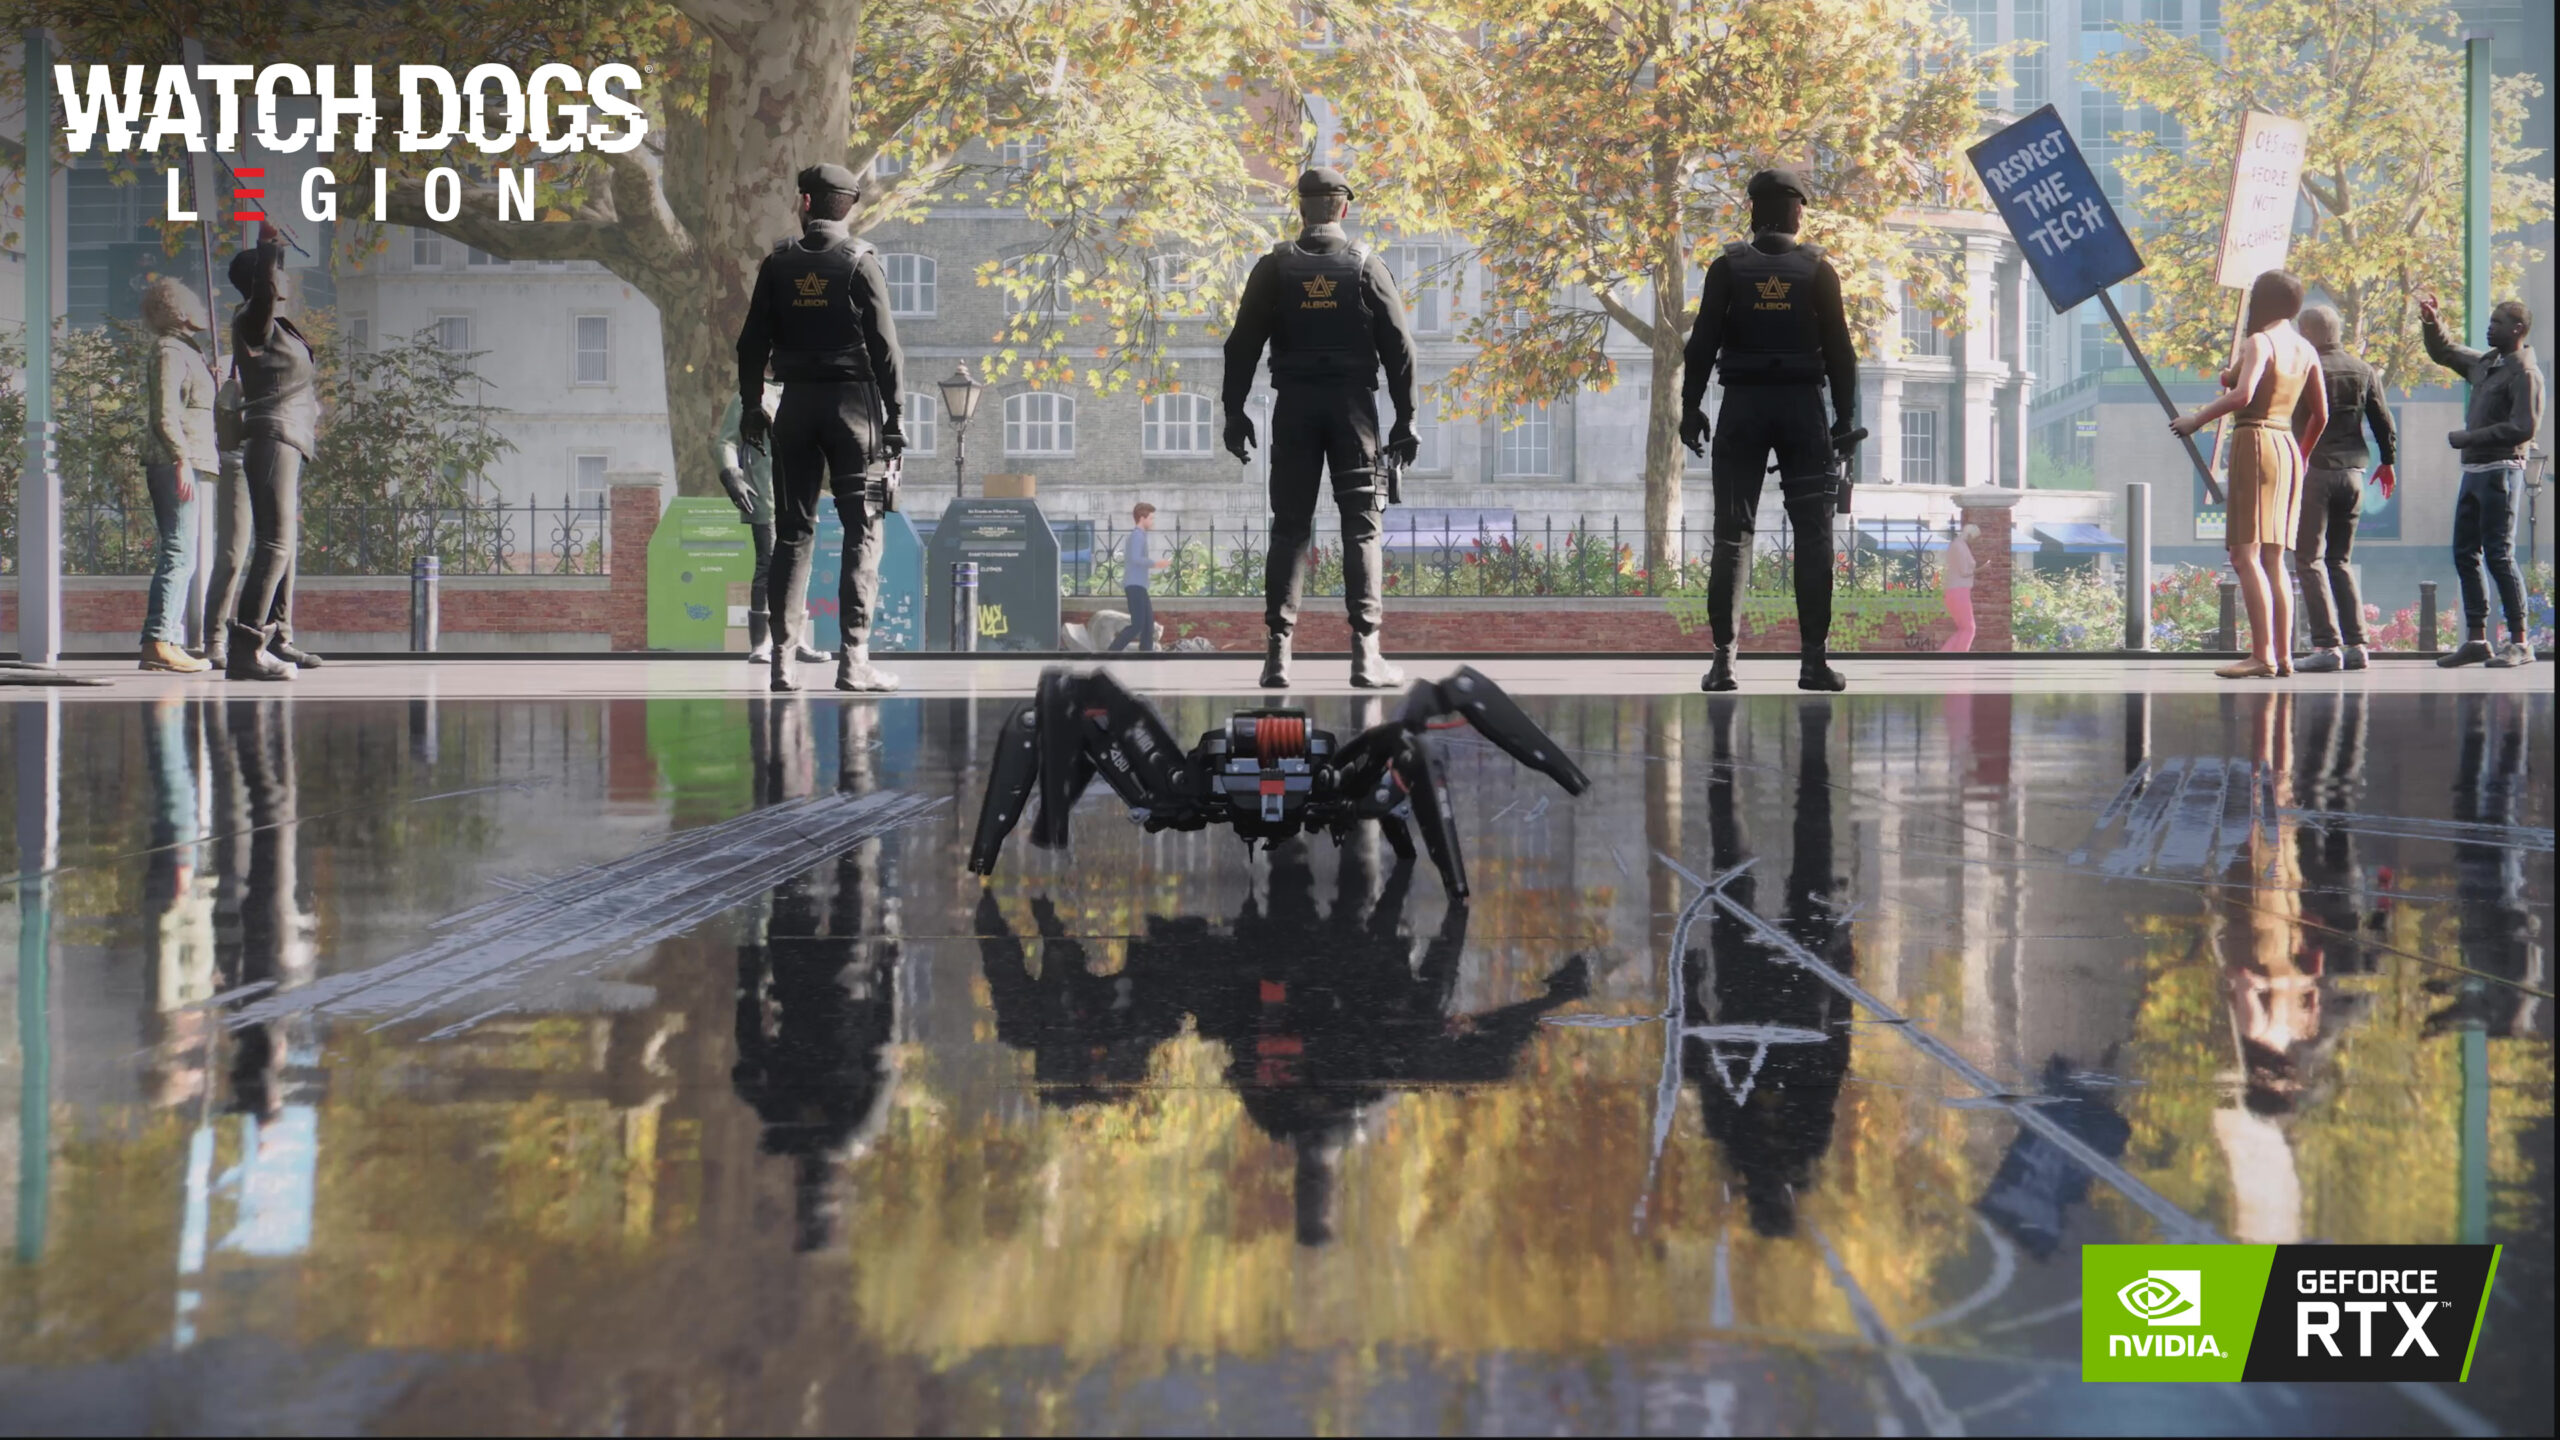 Watch Dogs Legion Raytraced Reflections Actually Require Rtx 3080 Gpu And Dlss Performance Mode At 4k Ultra